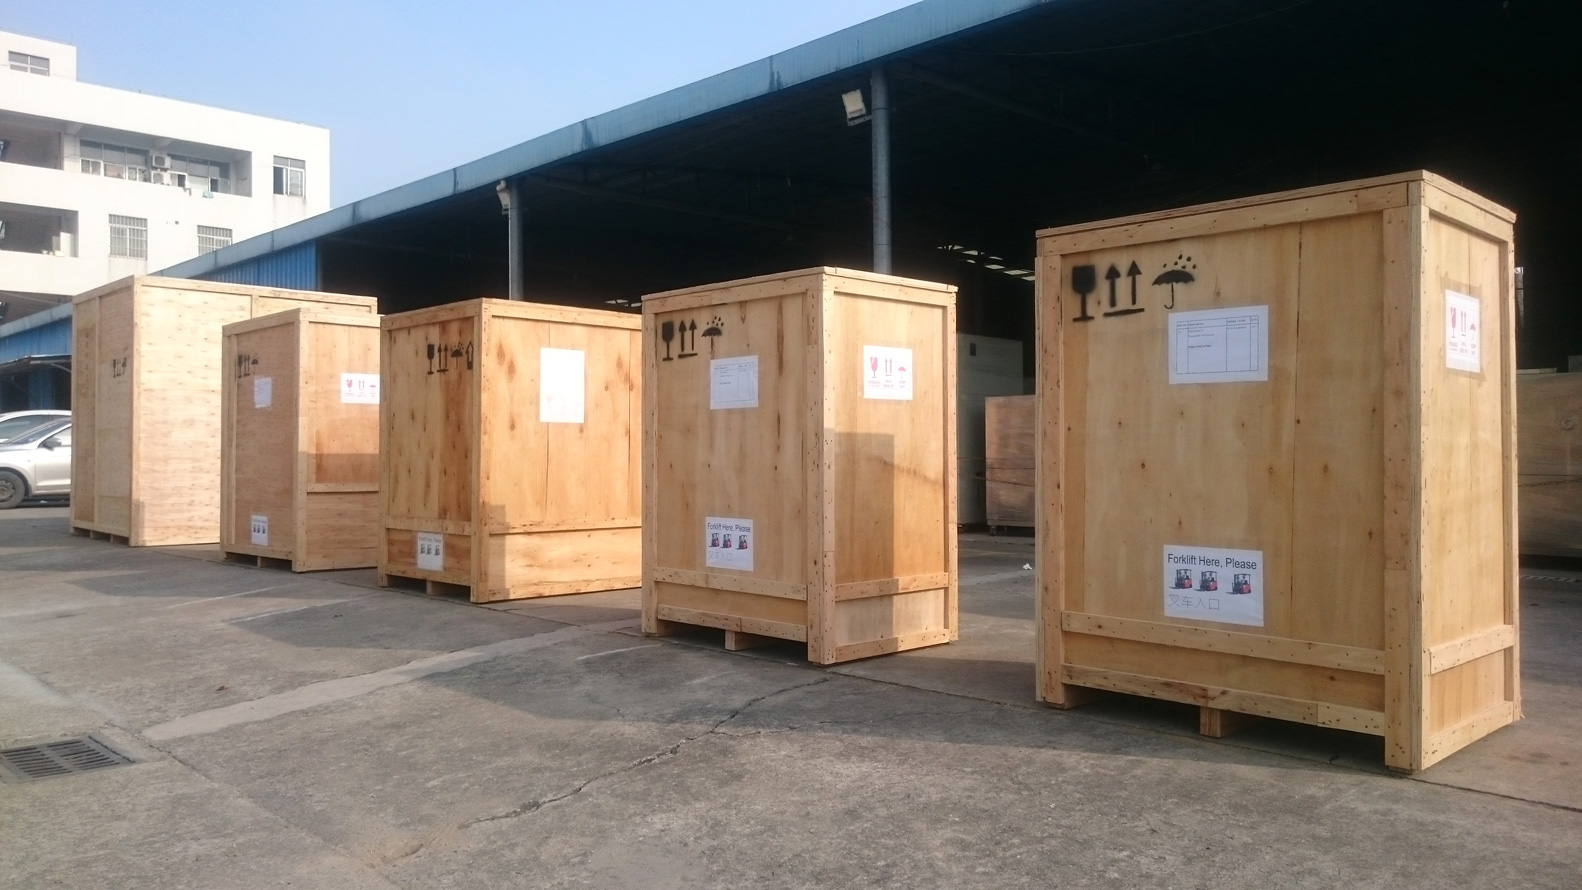 2018-12-21 Shipment | 4050 Liters Temperature Chamber